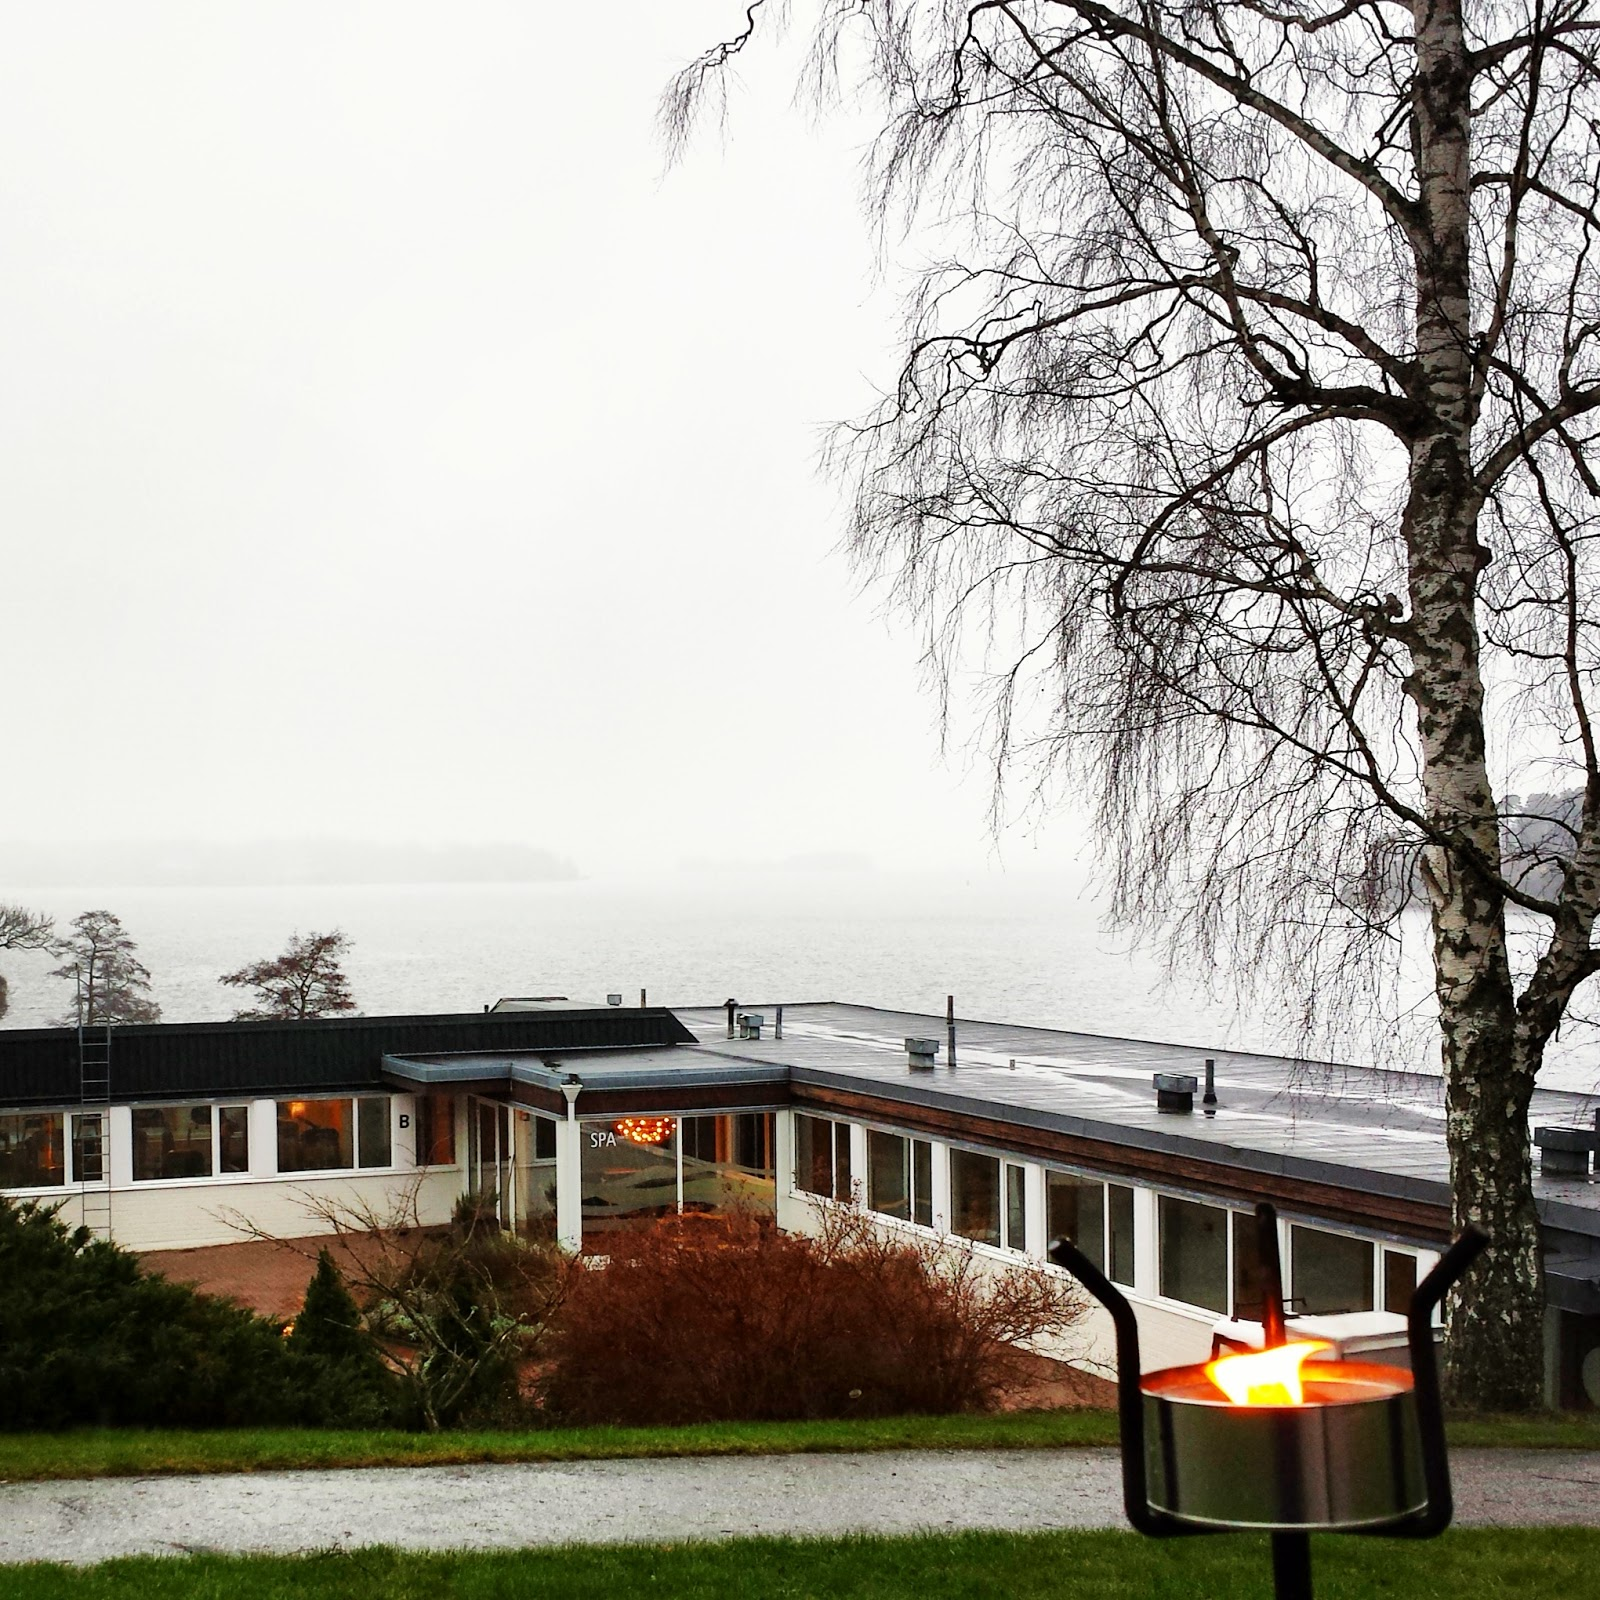 Skepparholmen Spa Hotel in Nacka, Stockholm + Swedish sauna customs  |  Skepparholmen Spa Hotel in Nacka, Stockholm + Swedish sauna customs  |  Swedish sauna rituals and snow flurries by the sea on afeathery*nest  |  http://afeatherynest.com